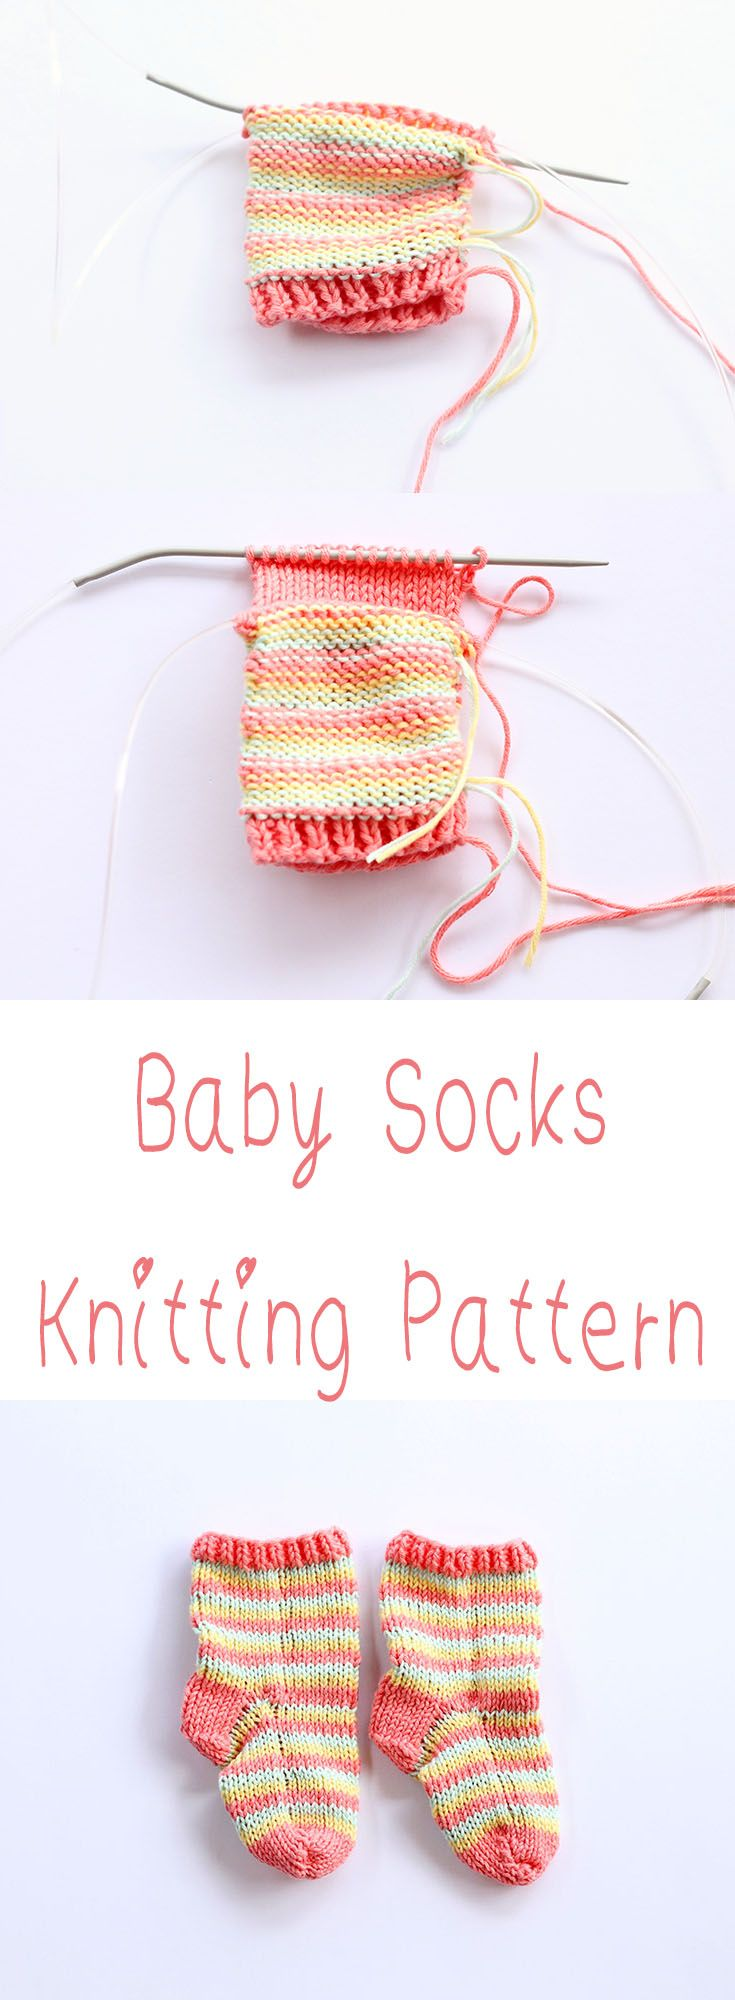 End Bullying – Make A Hat For #HatNotHate | Knitting | Pinterest ...